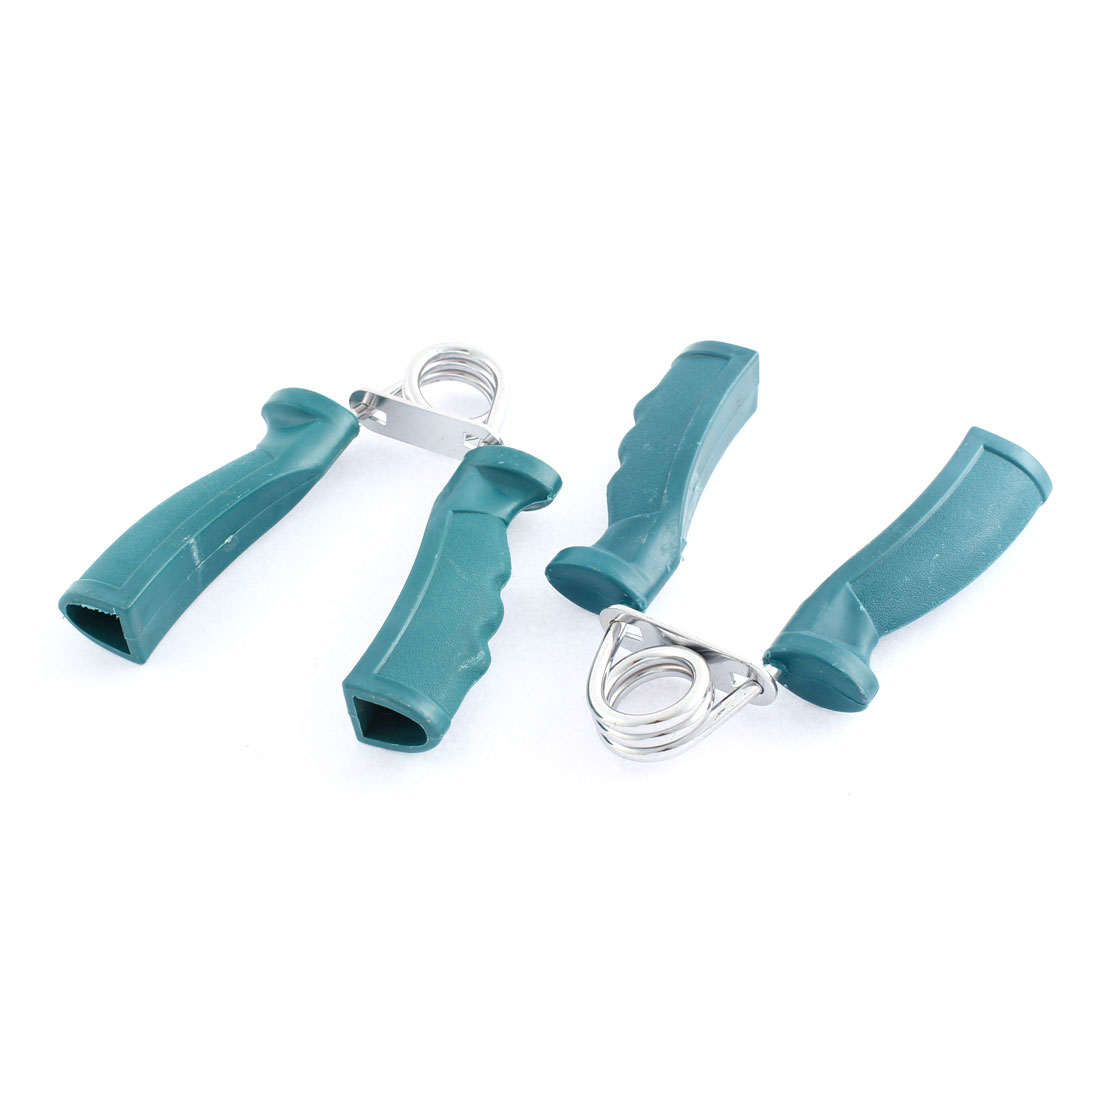 Plastic Nonslip Handle Fitness Exercise Arm Train Strength Hand Grip 2 Pcs Dark Green